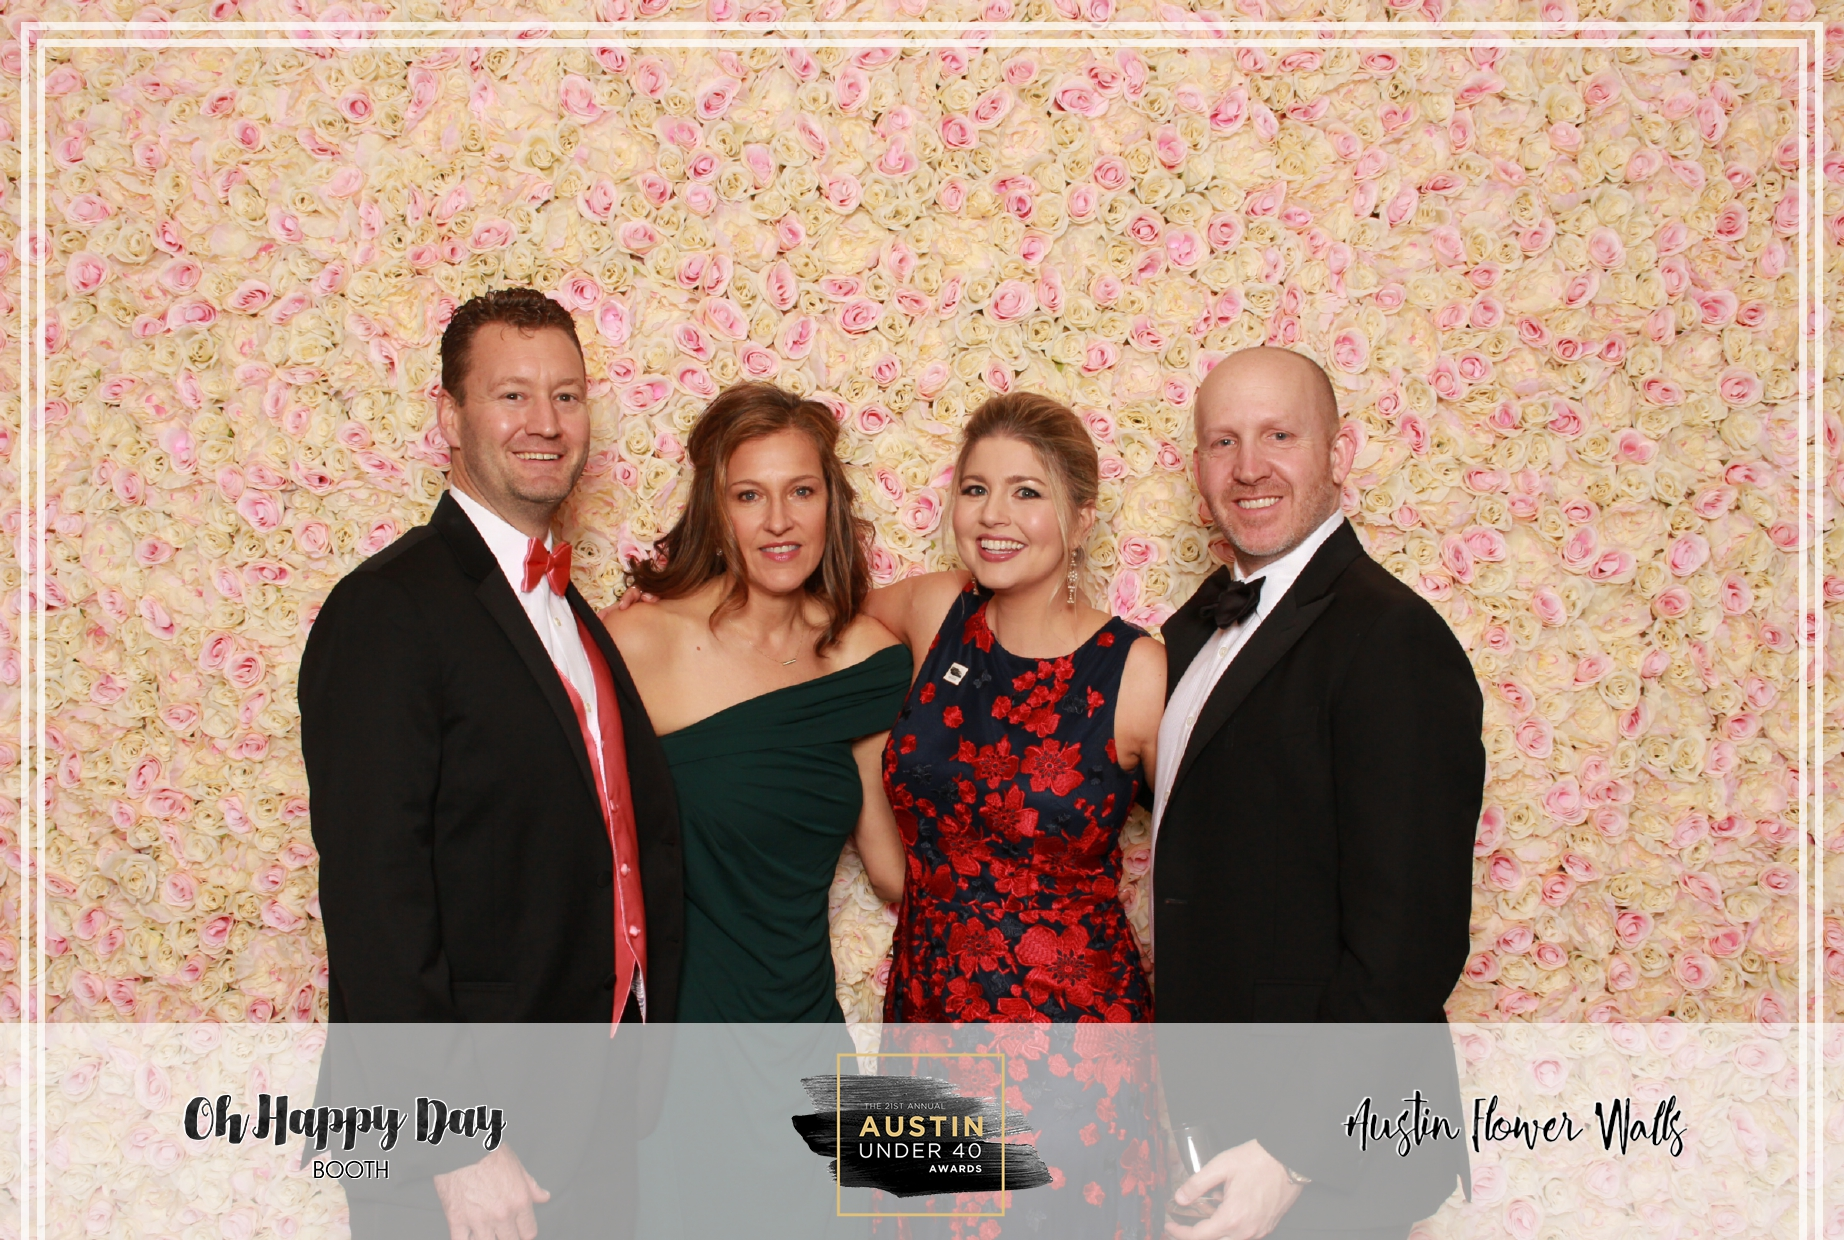 Oh Happy Day Booth - Austin Under 40-139.jpg